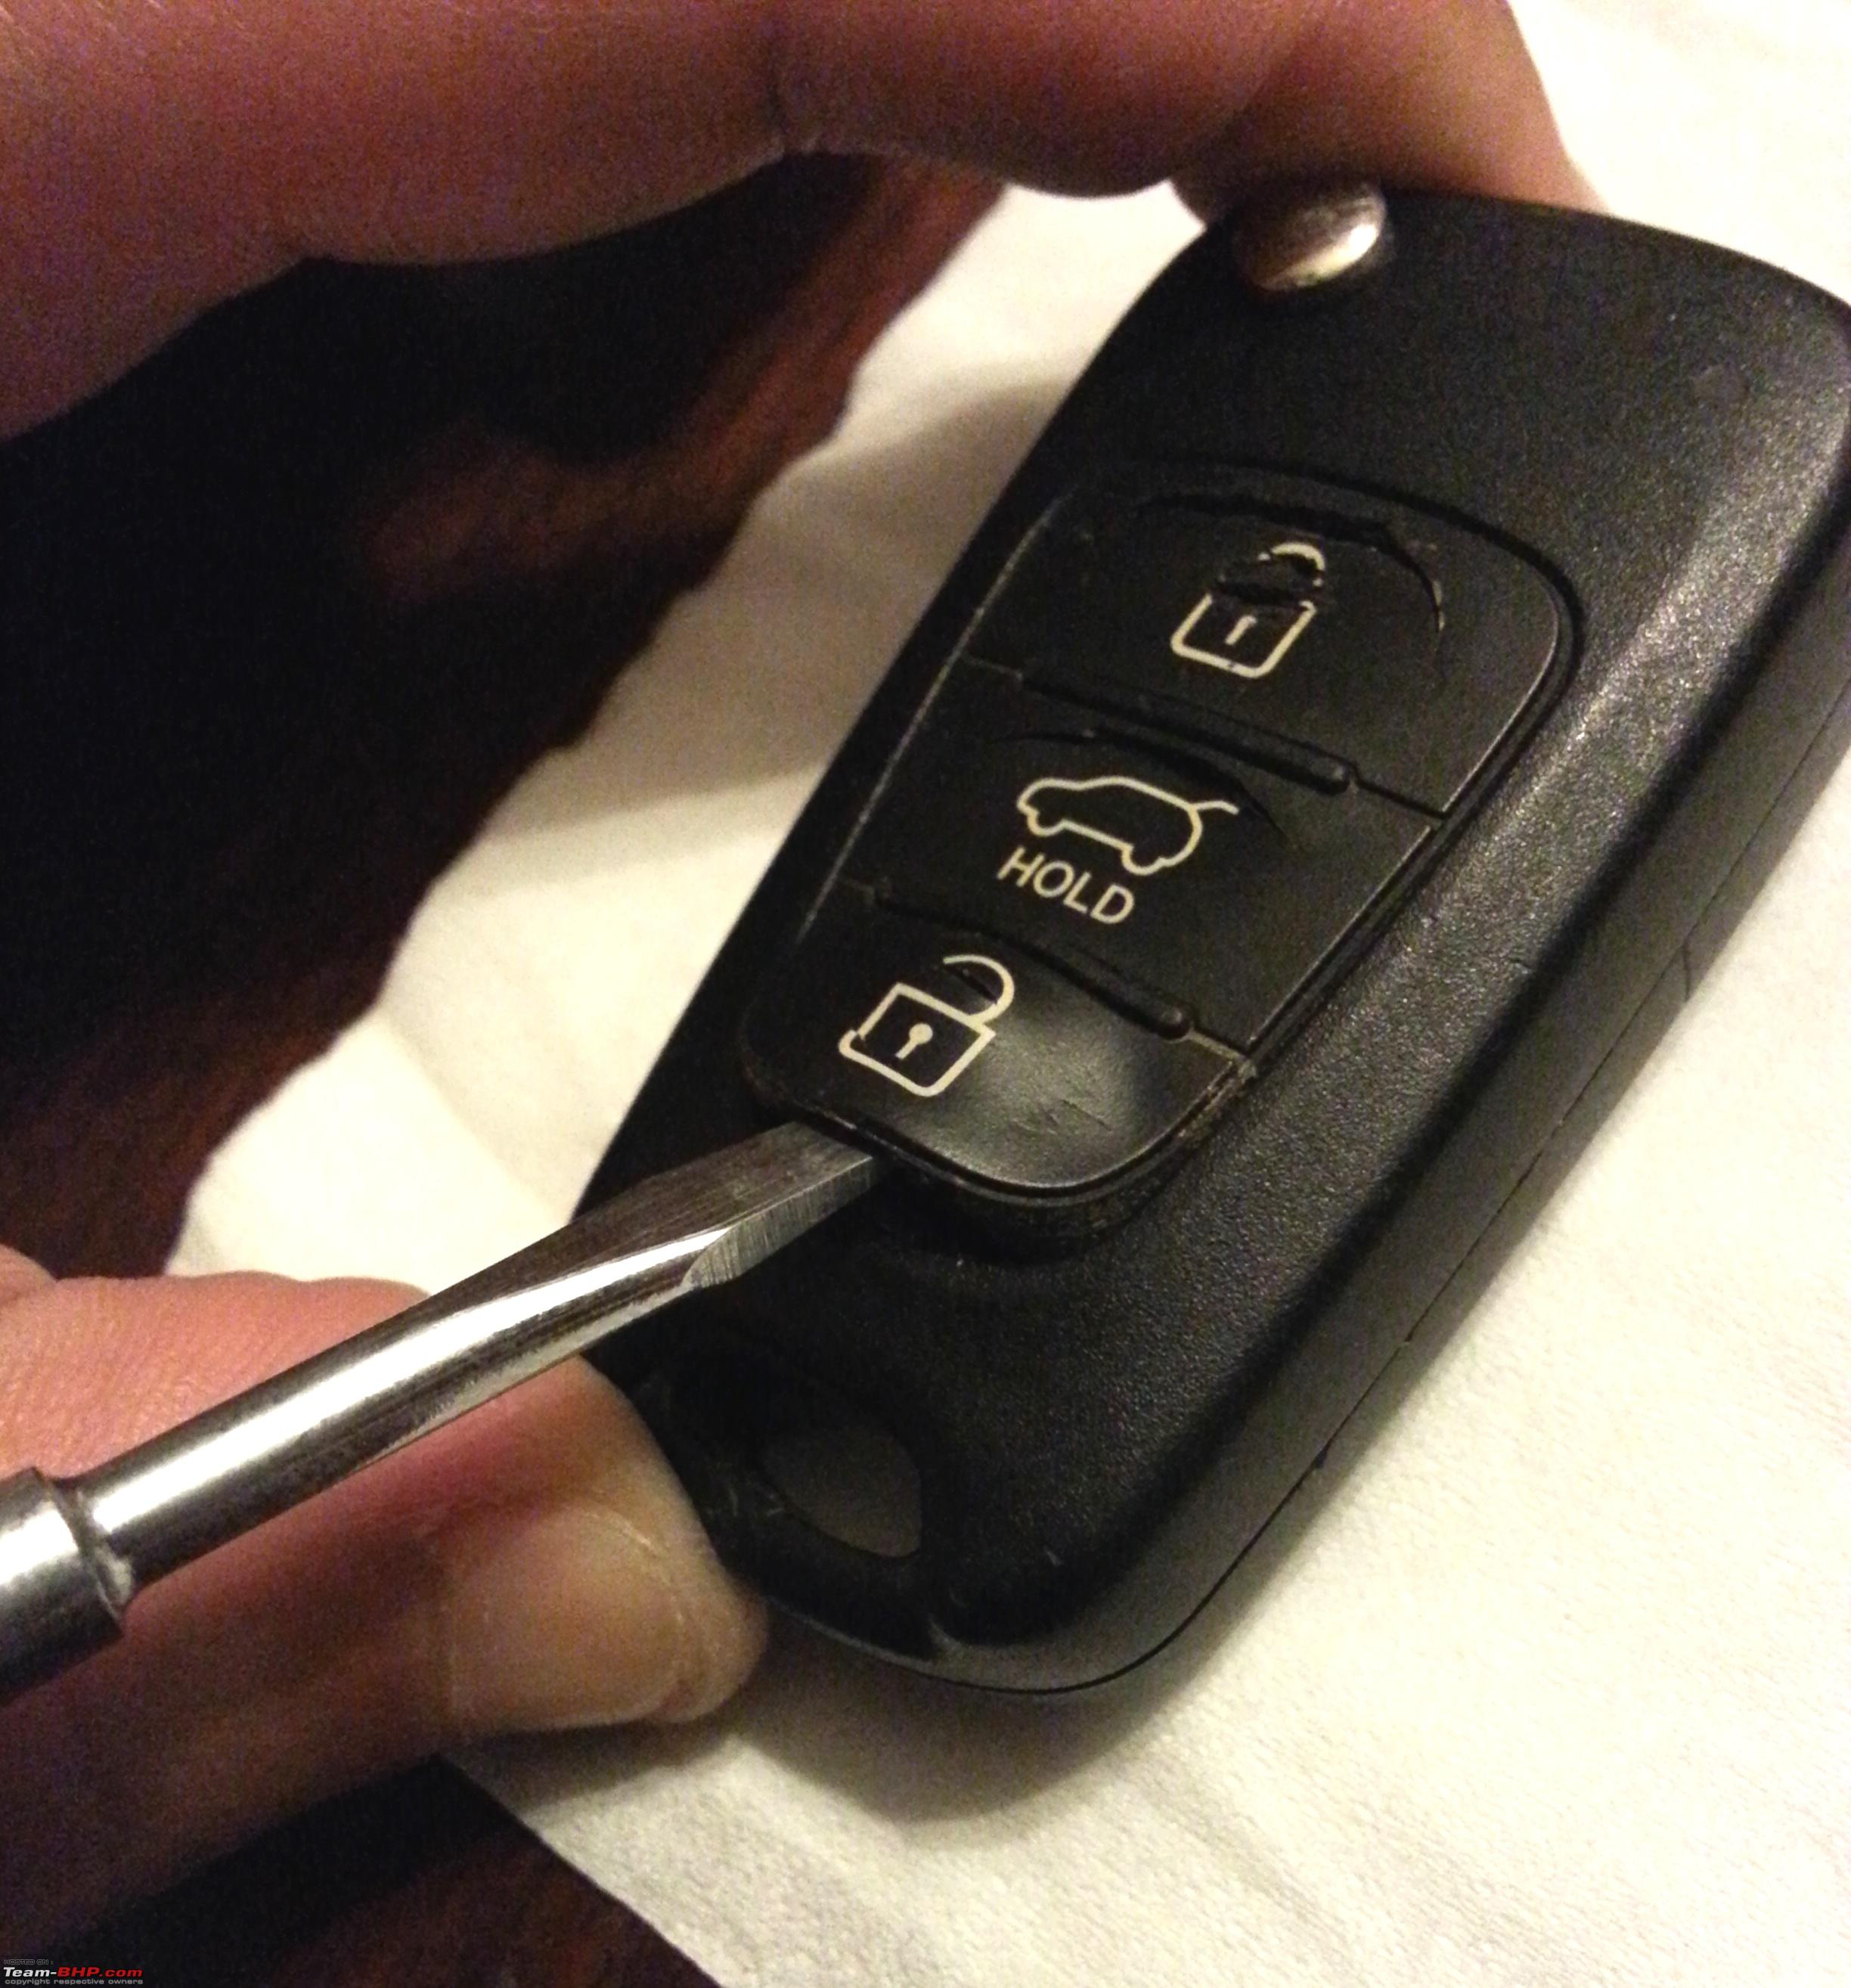 Key Remote Fob Battery Drain Team Bhp Automotive Short Circuit That May Cause A Recurring Dead 20141117 192747